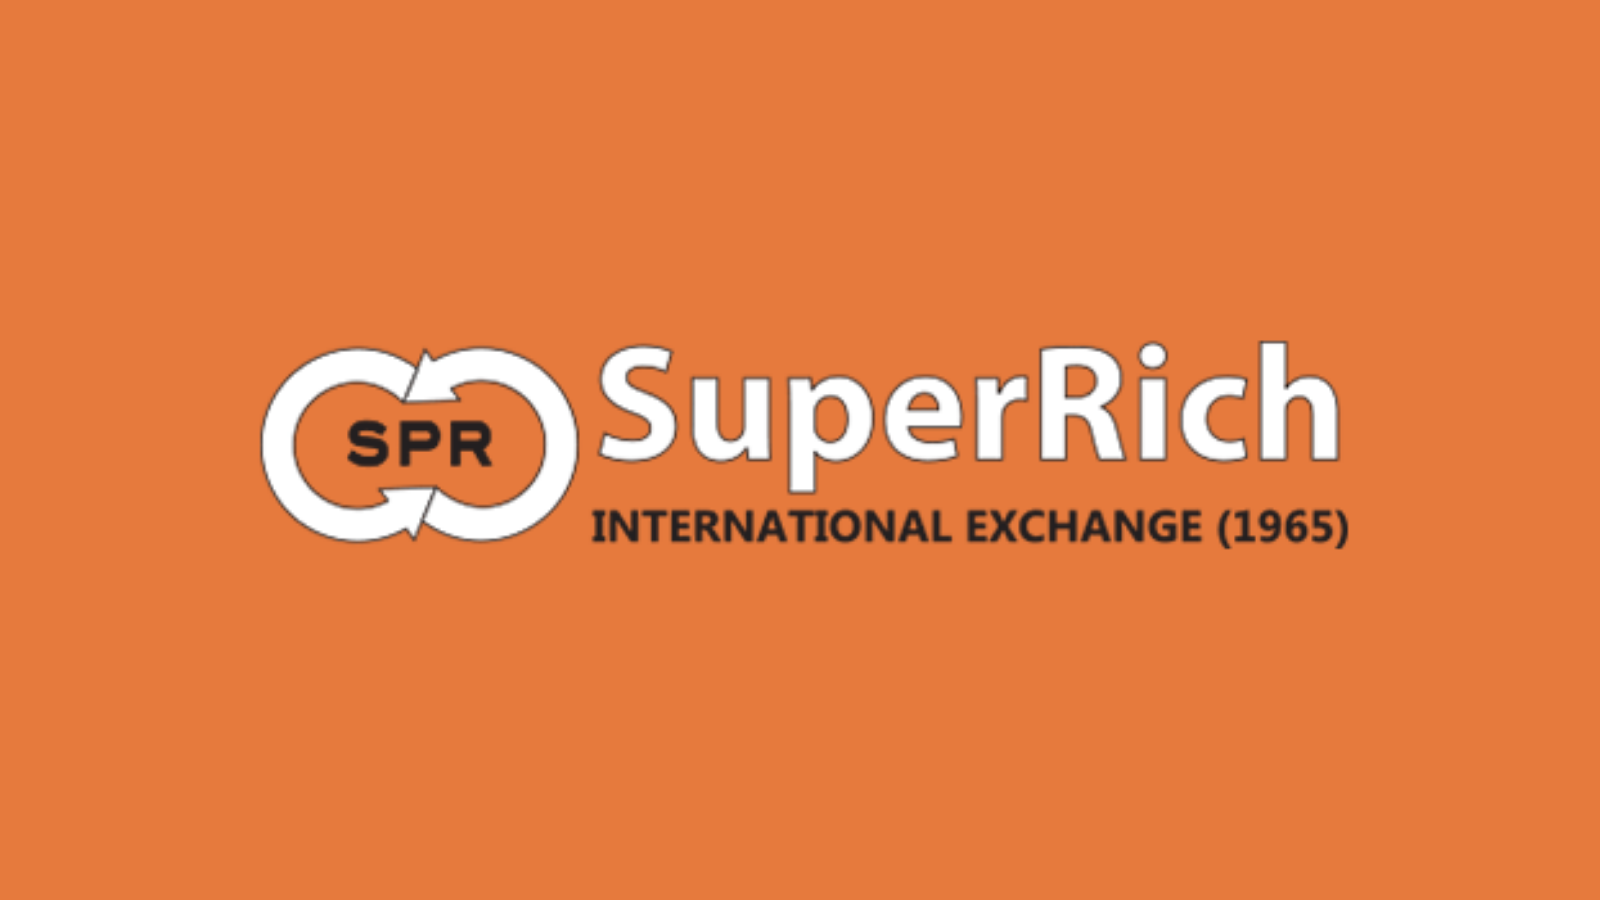 A Por Thai Currency Exchange Superrich International Is Reportedly Planning To Add Cryptocurrencies Its Offerings And Also Considering